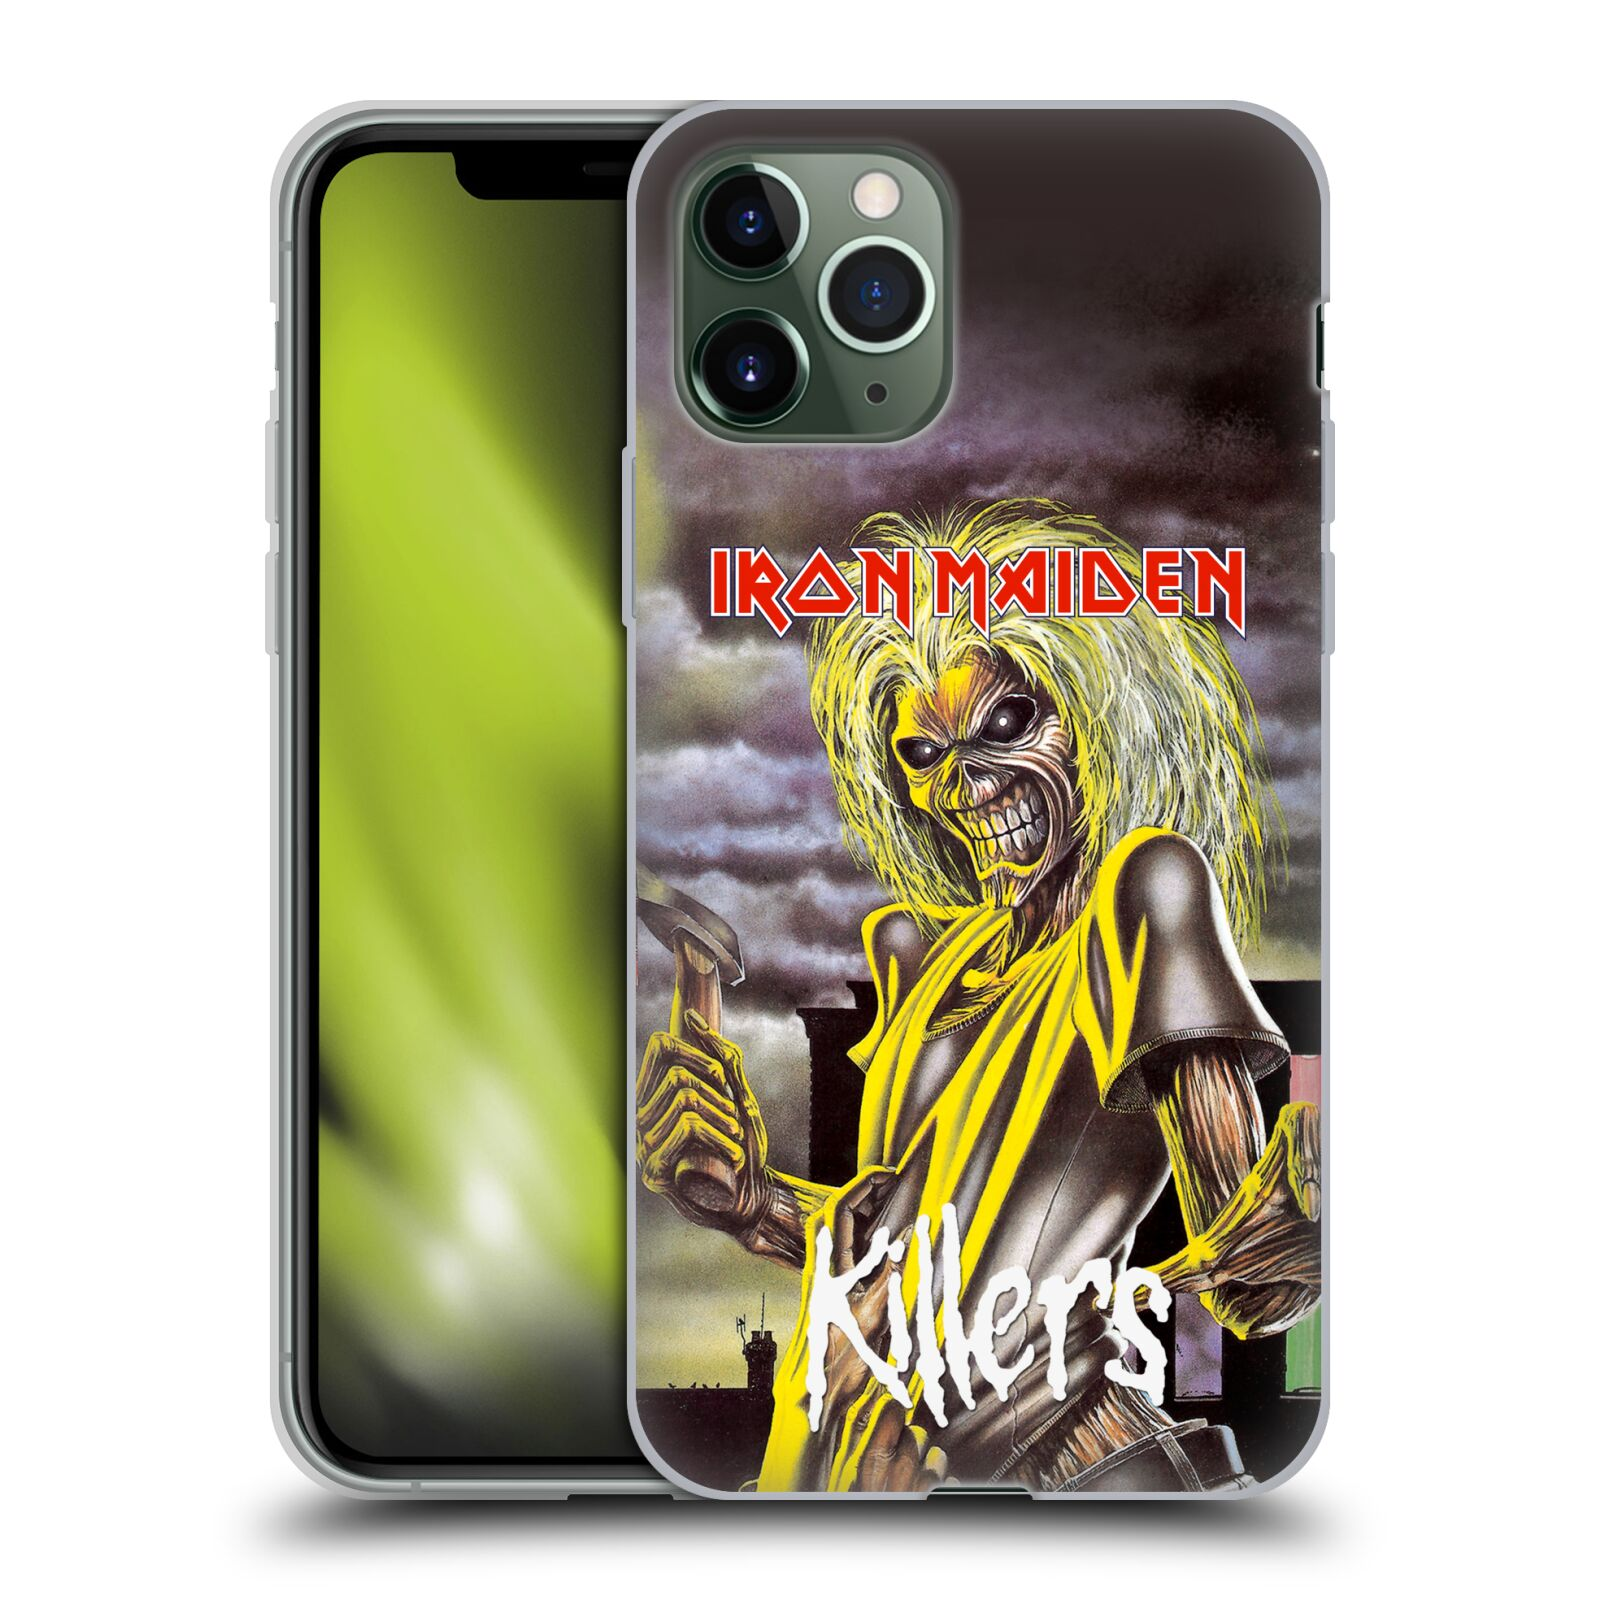 Silikonové pouzdro na mobil Apple iPhone 11 Pro - Head Case - Iron Maiden - Killers